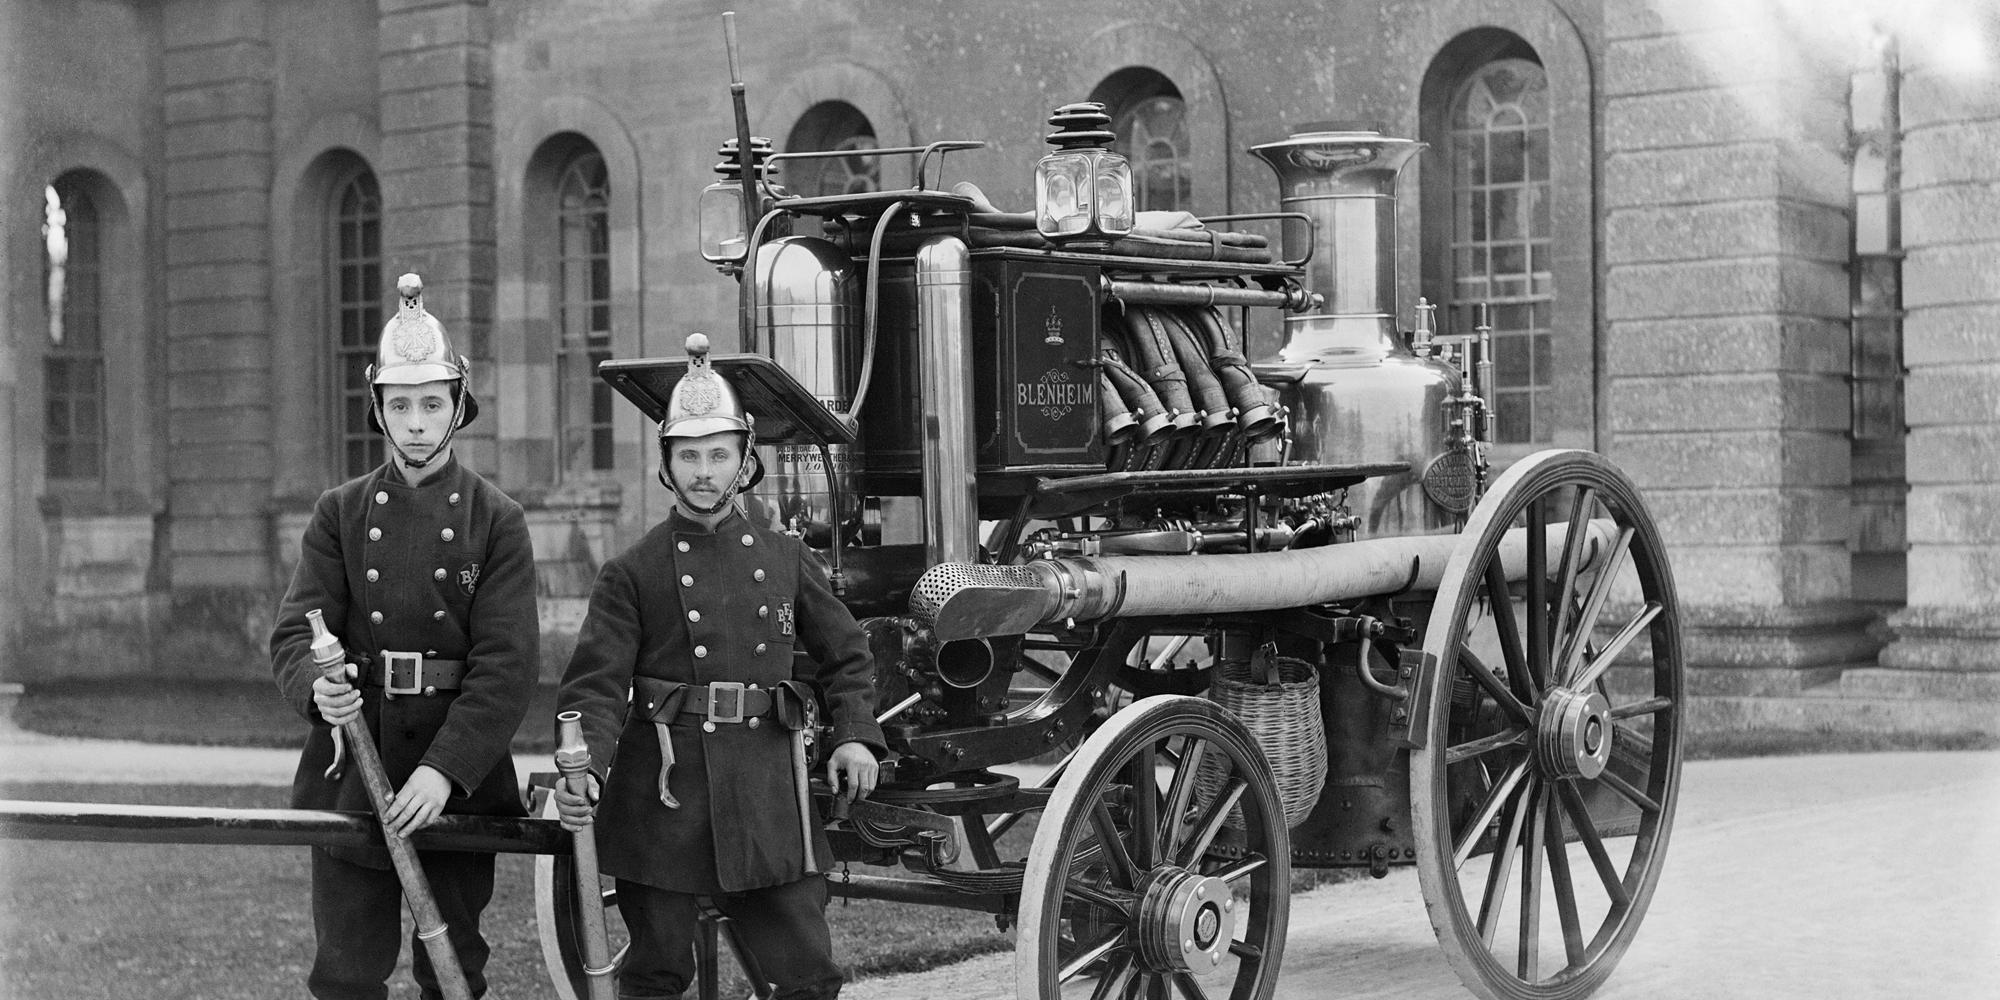 Blenheim Palace Fire Brigade with Merryweather Engine photograph by Henry Taunt